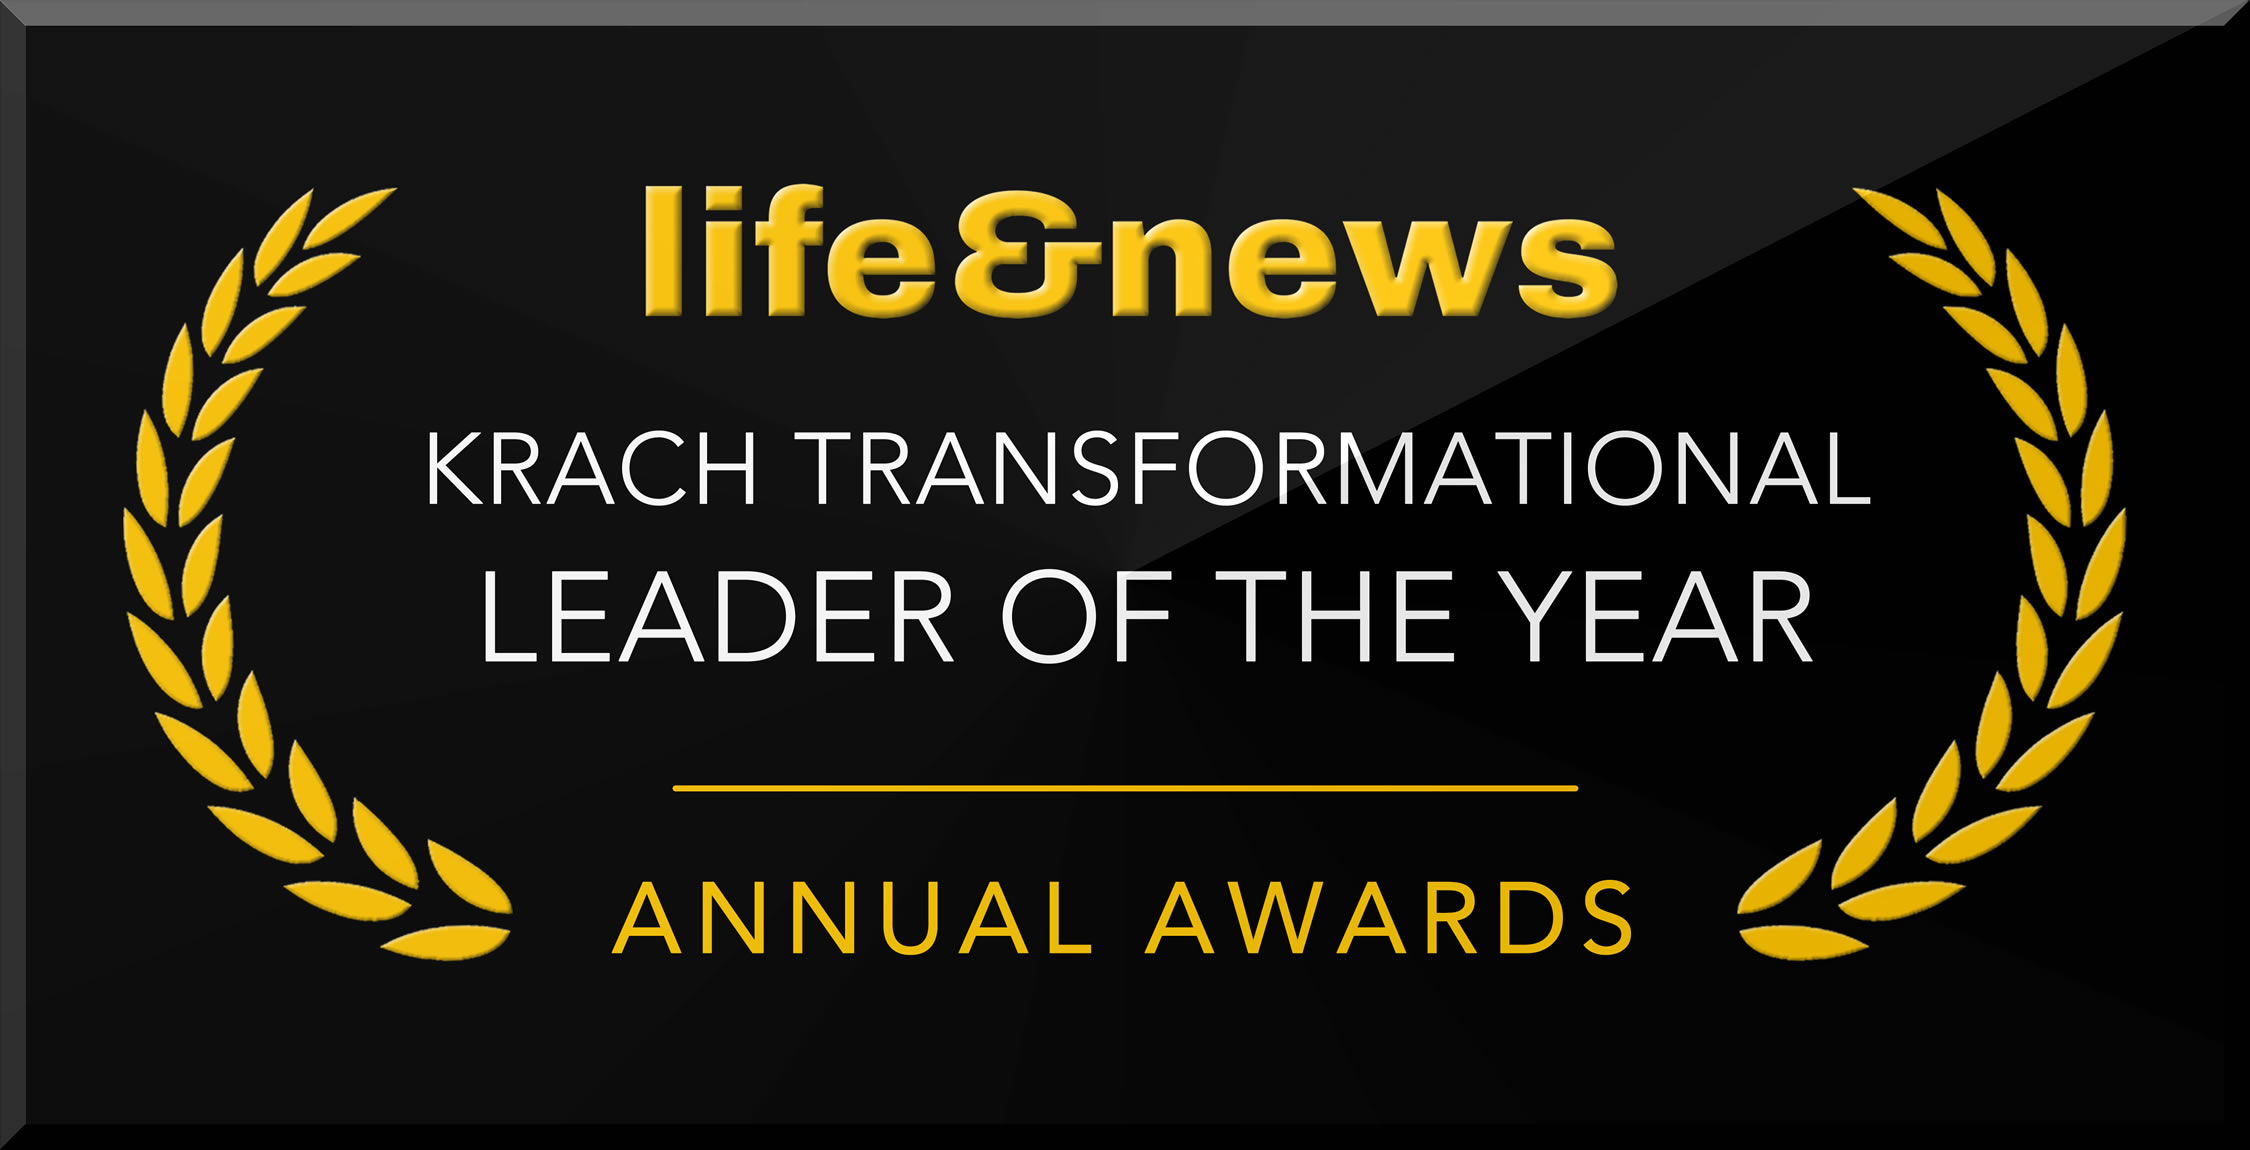 Life & News has named its Transformational Leader of the Year Award after inaugural recipient, Keith Krach